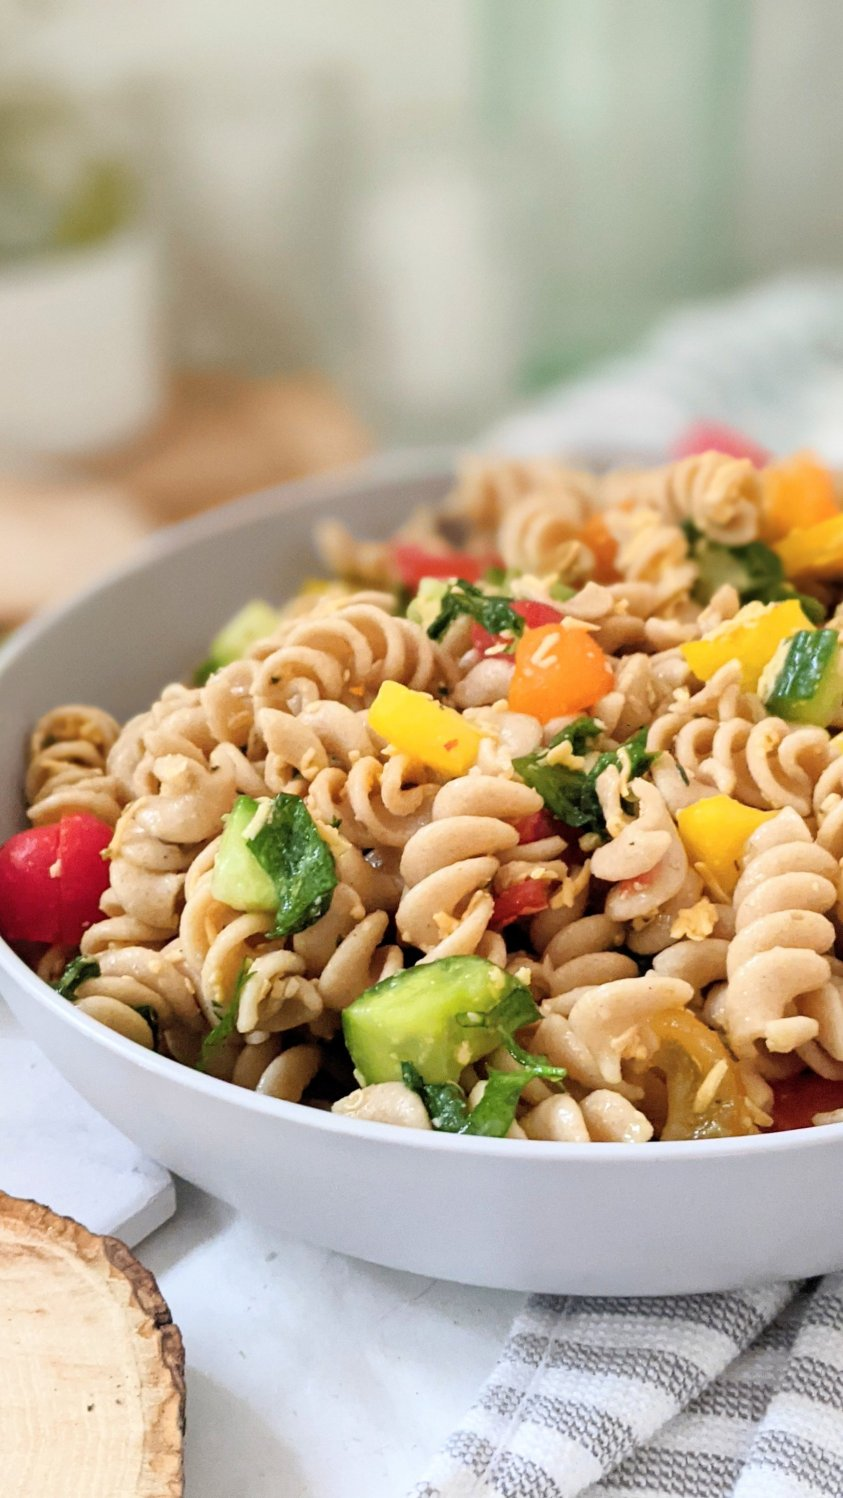 healthy pasta salad with vegetables recipe vegetarian gluten free bell pepper pasta salad tri colored pepper salad healthy noodle salad for summer bbq